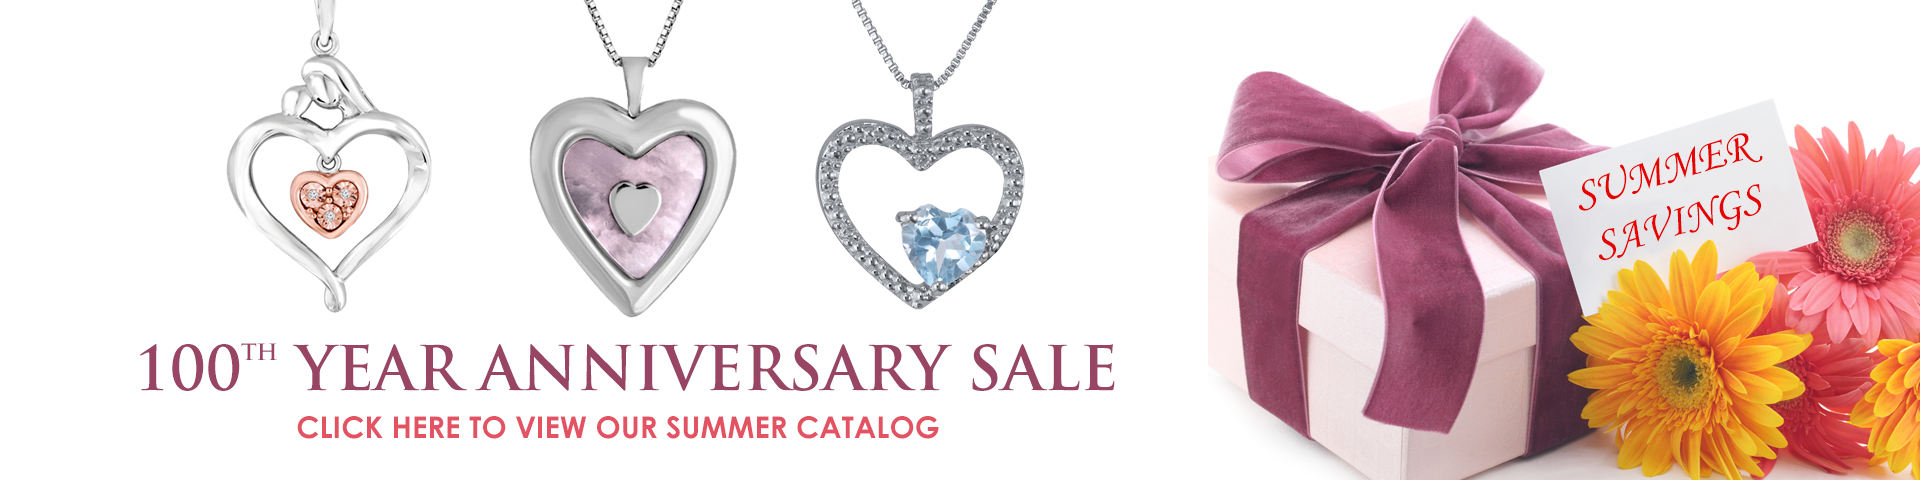 100th Year Anniversary Sale